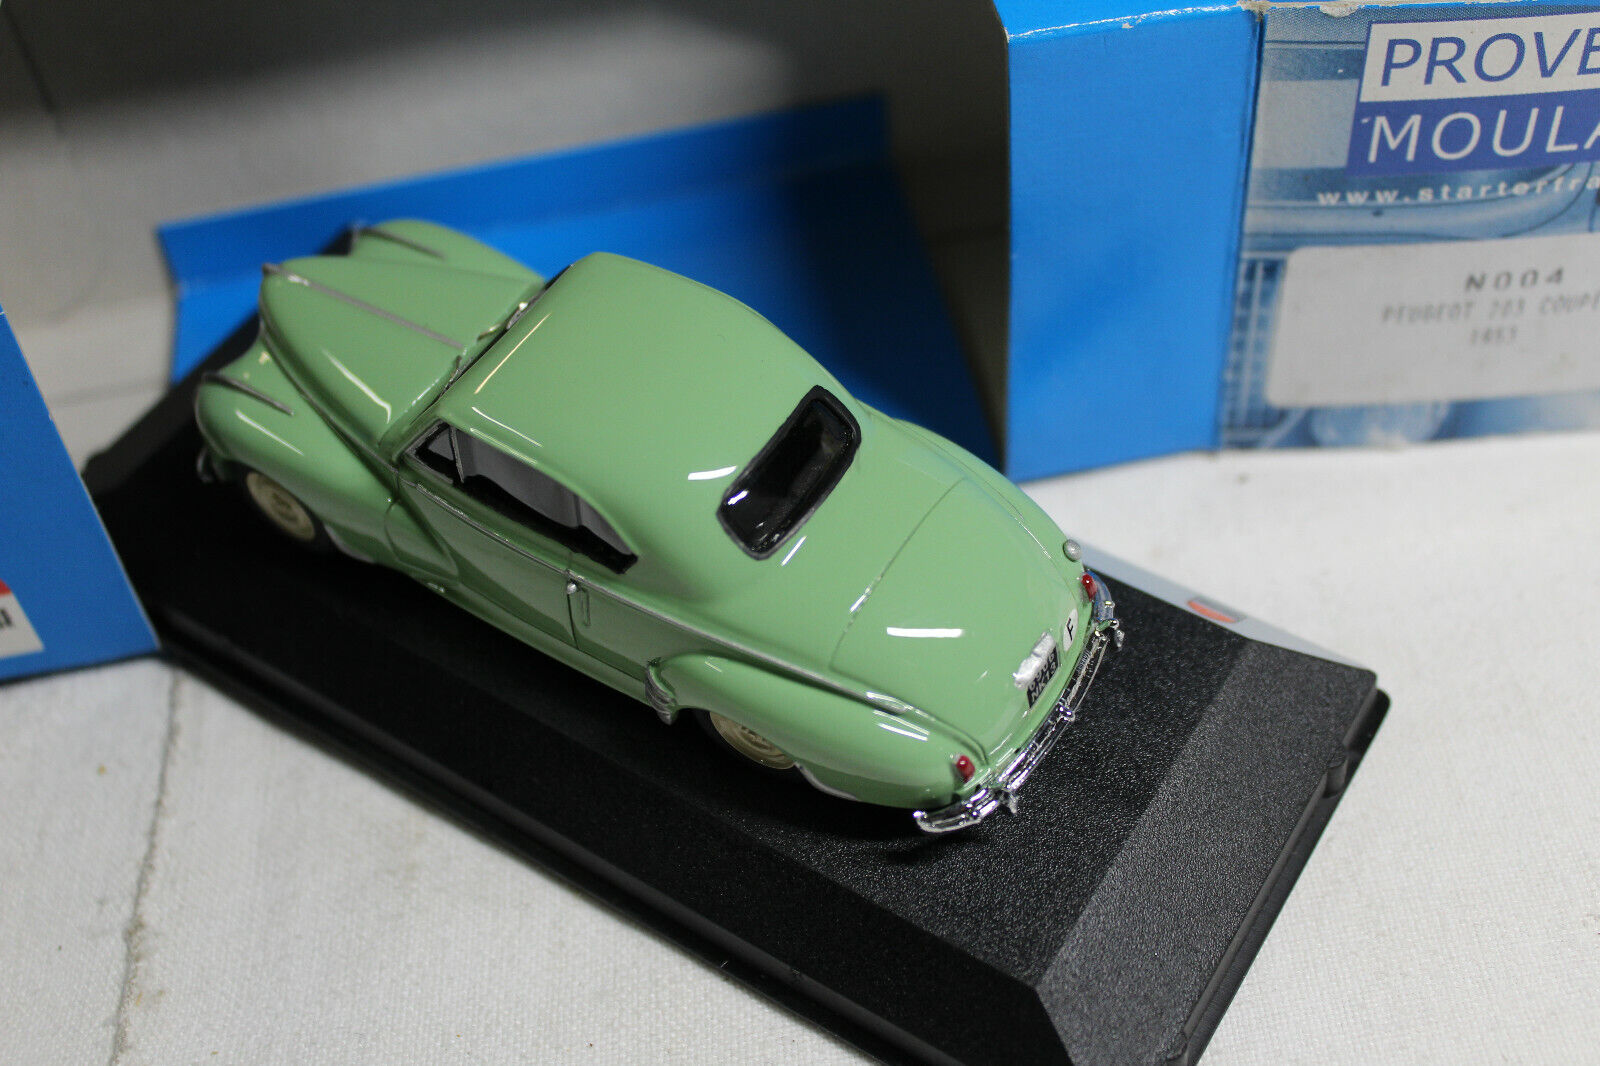 Peugeot 203 coupe provence moulage 1 43 new box